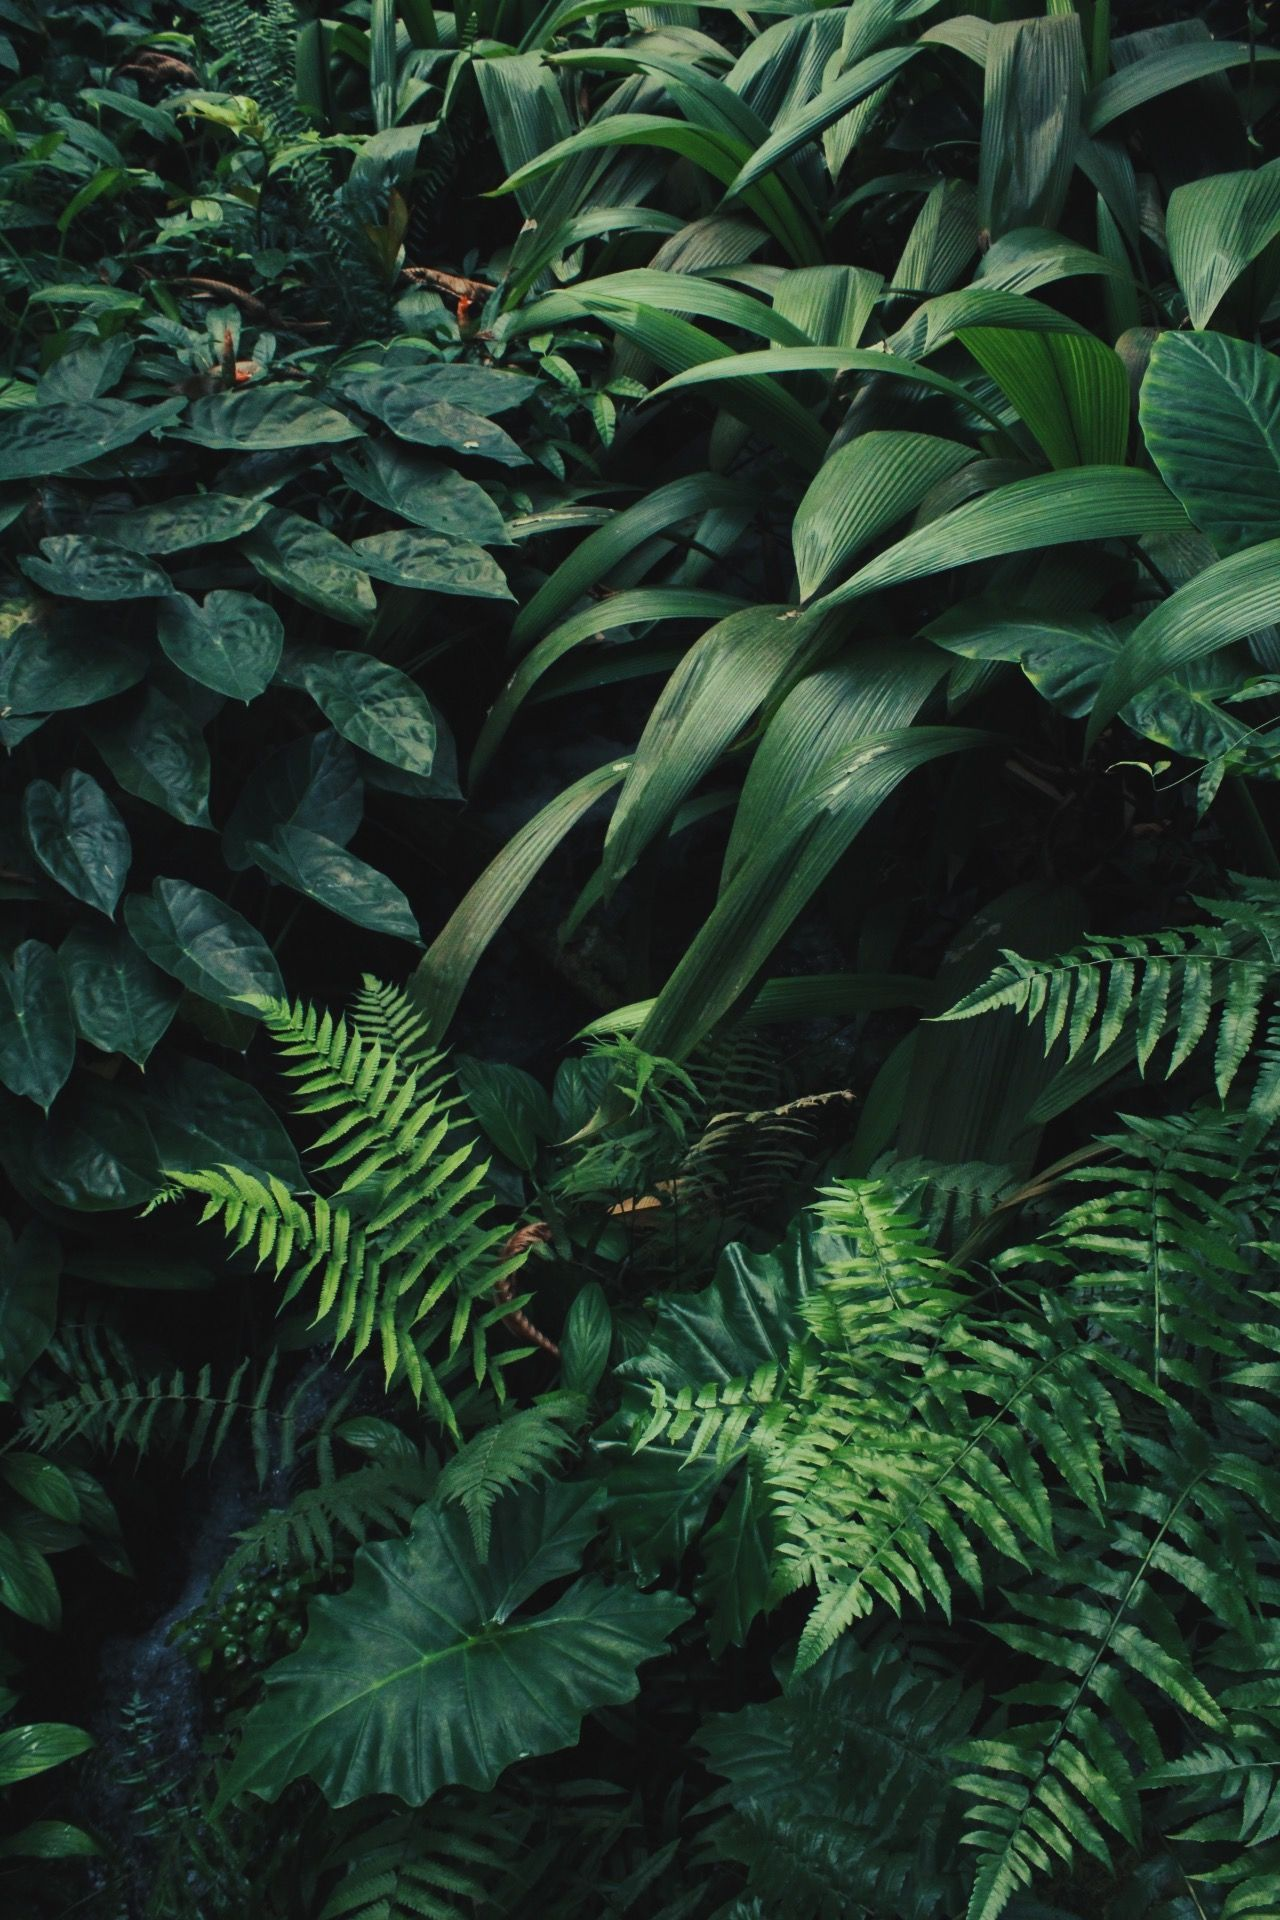 green plant aesthetic wallpapers on wallpaperdog